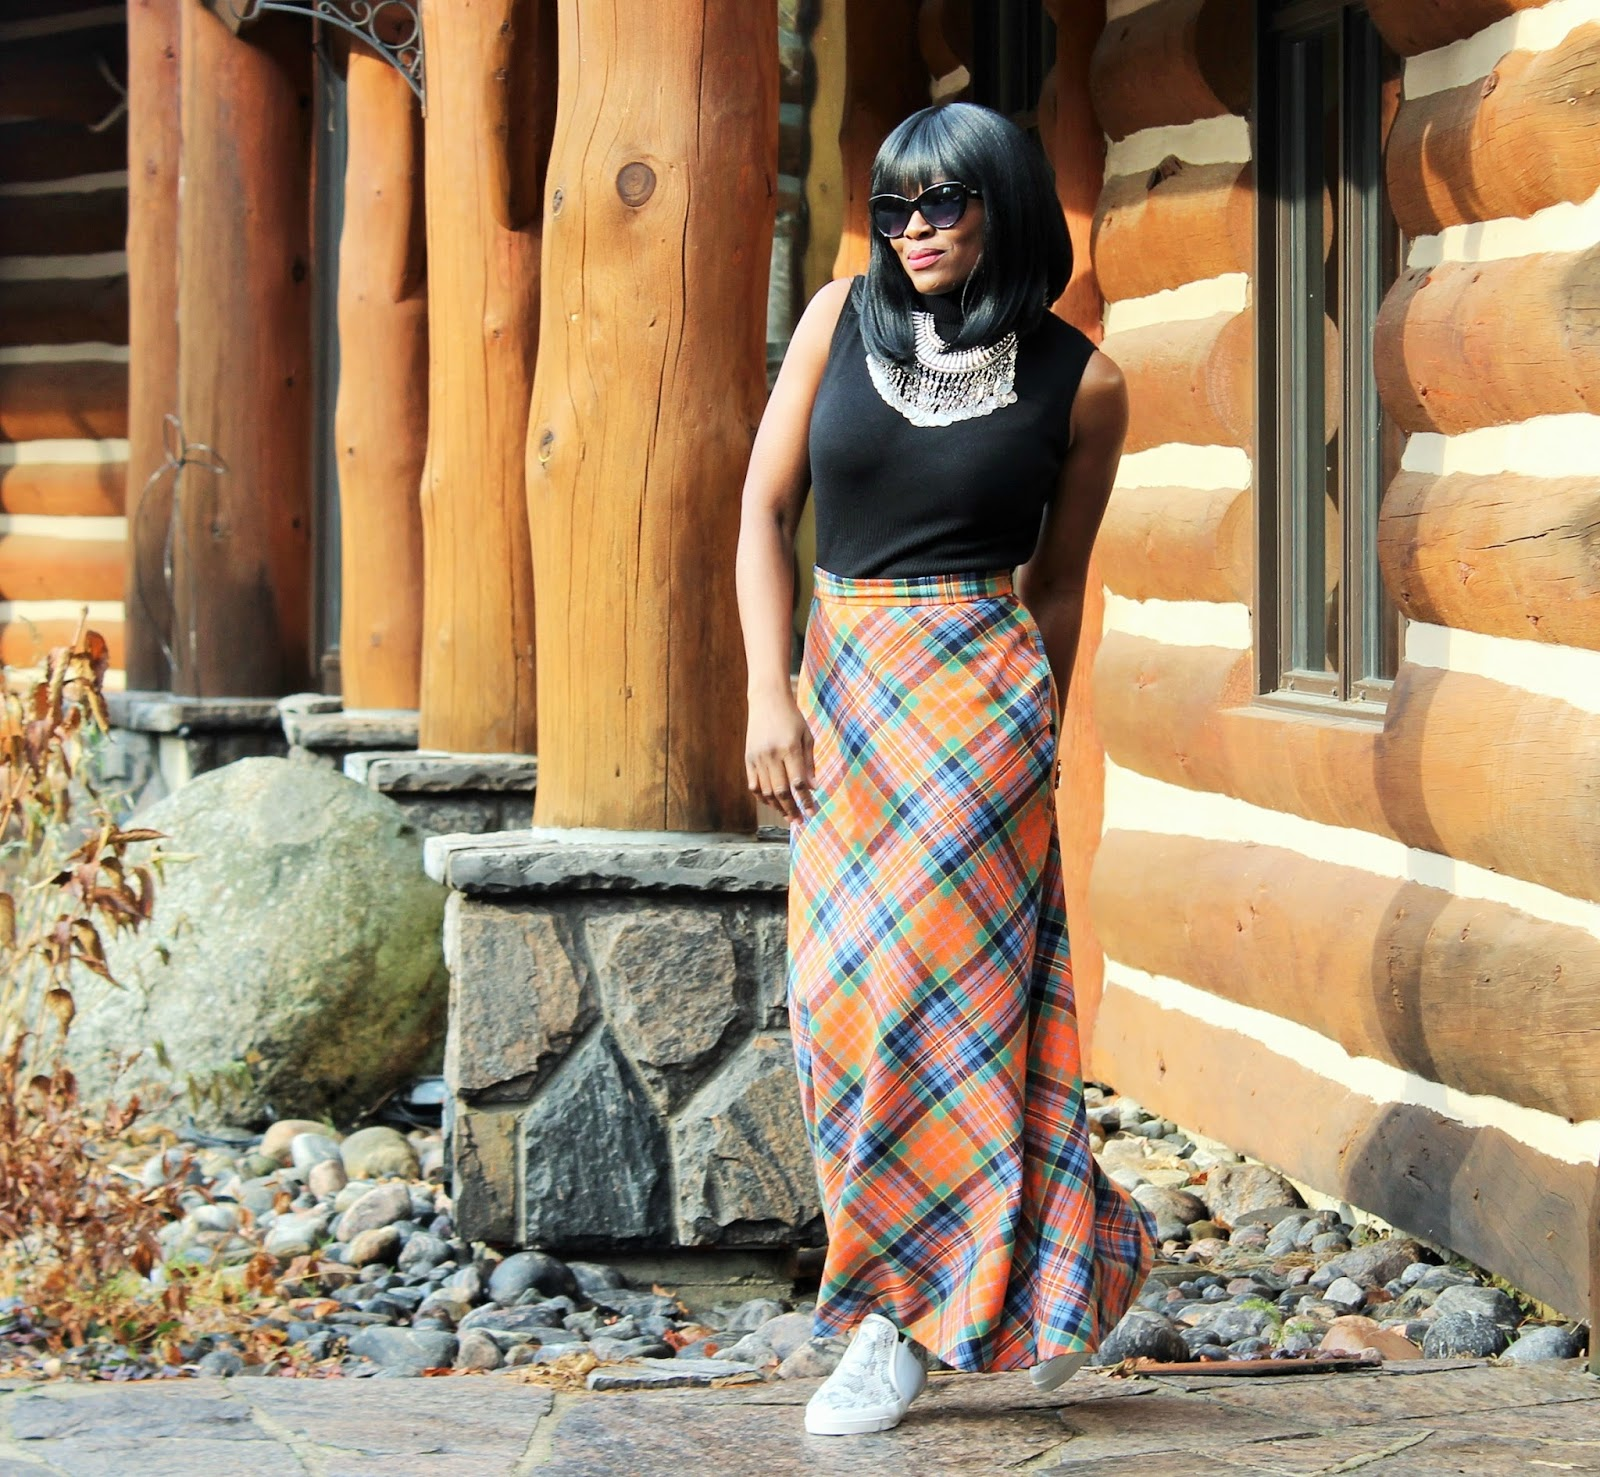 Butterfly Twists Trainers + Vintage Tartan Maxi Skirt